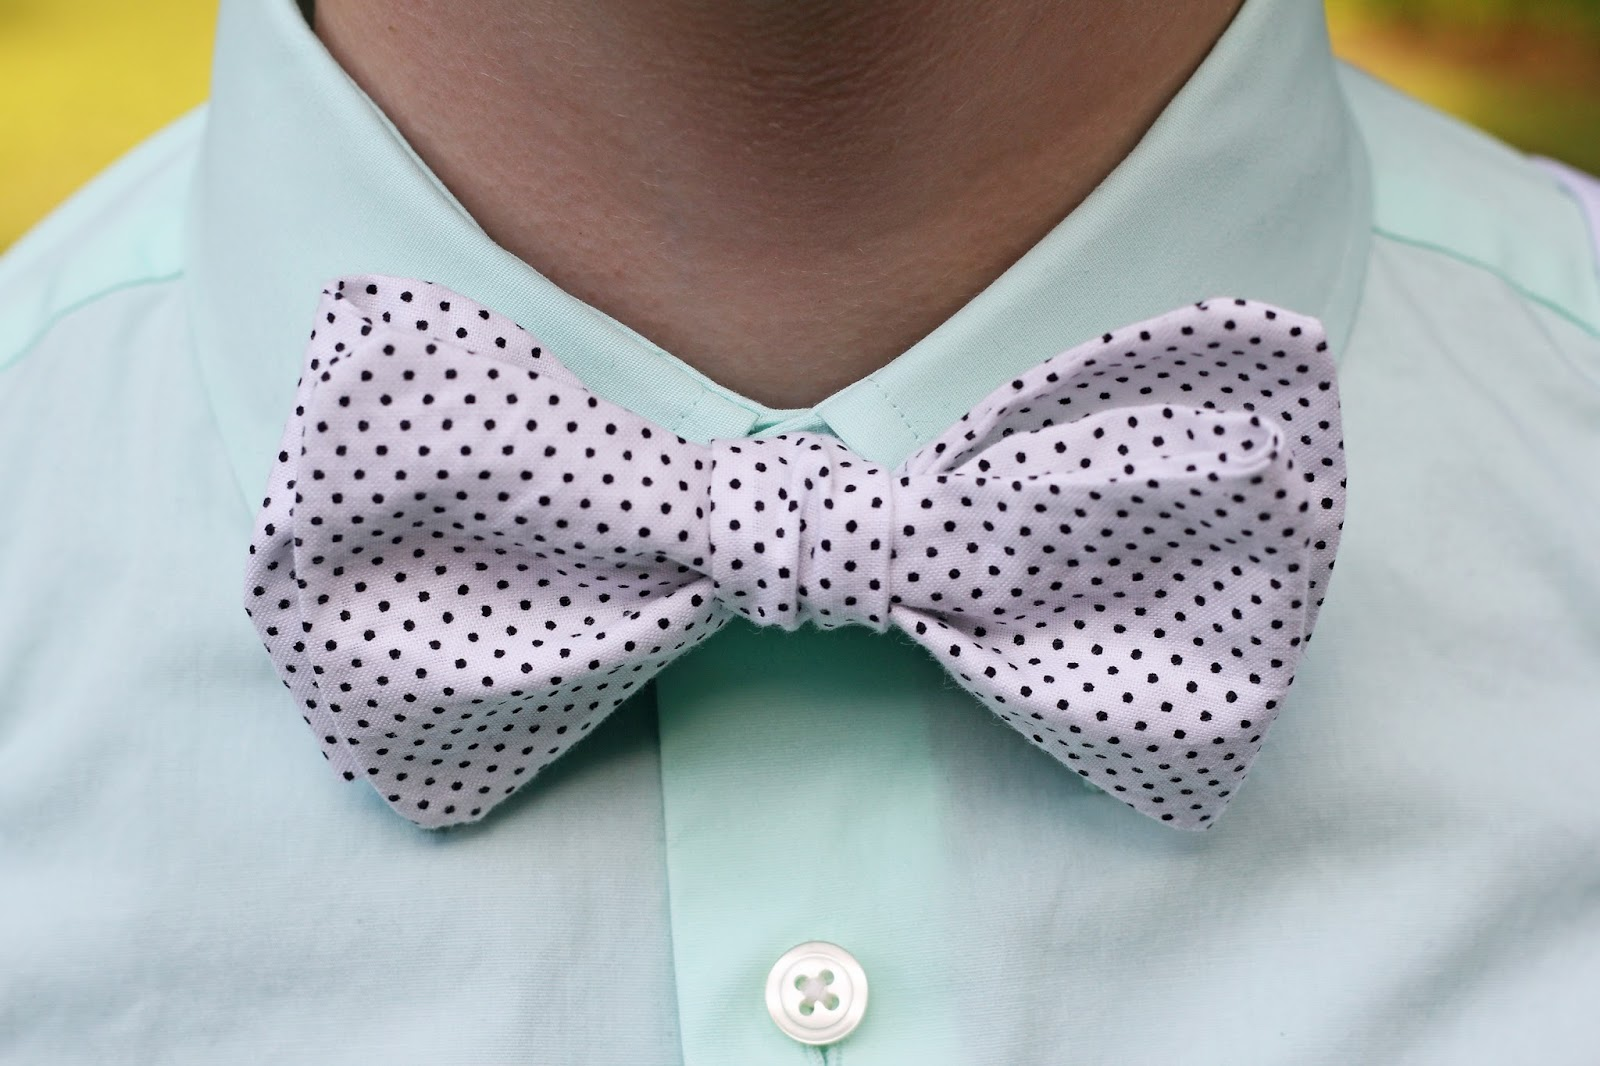 Ta-da! Personalized bow tie